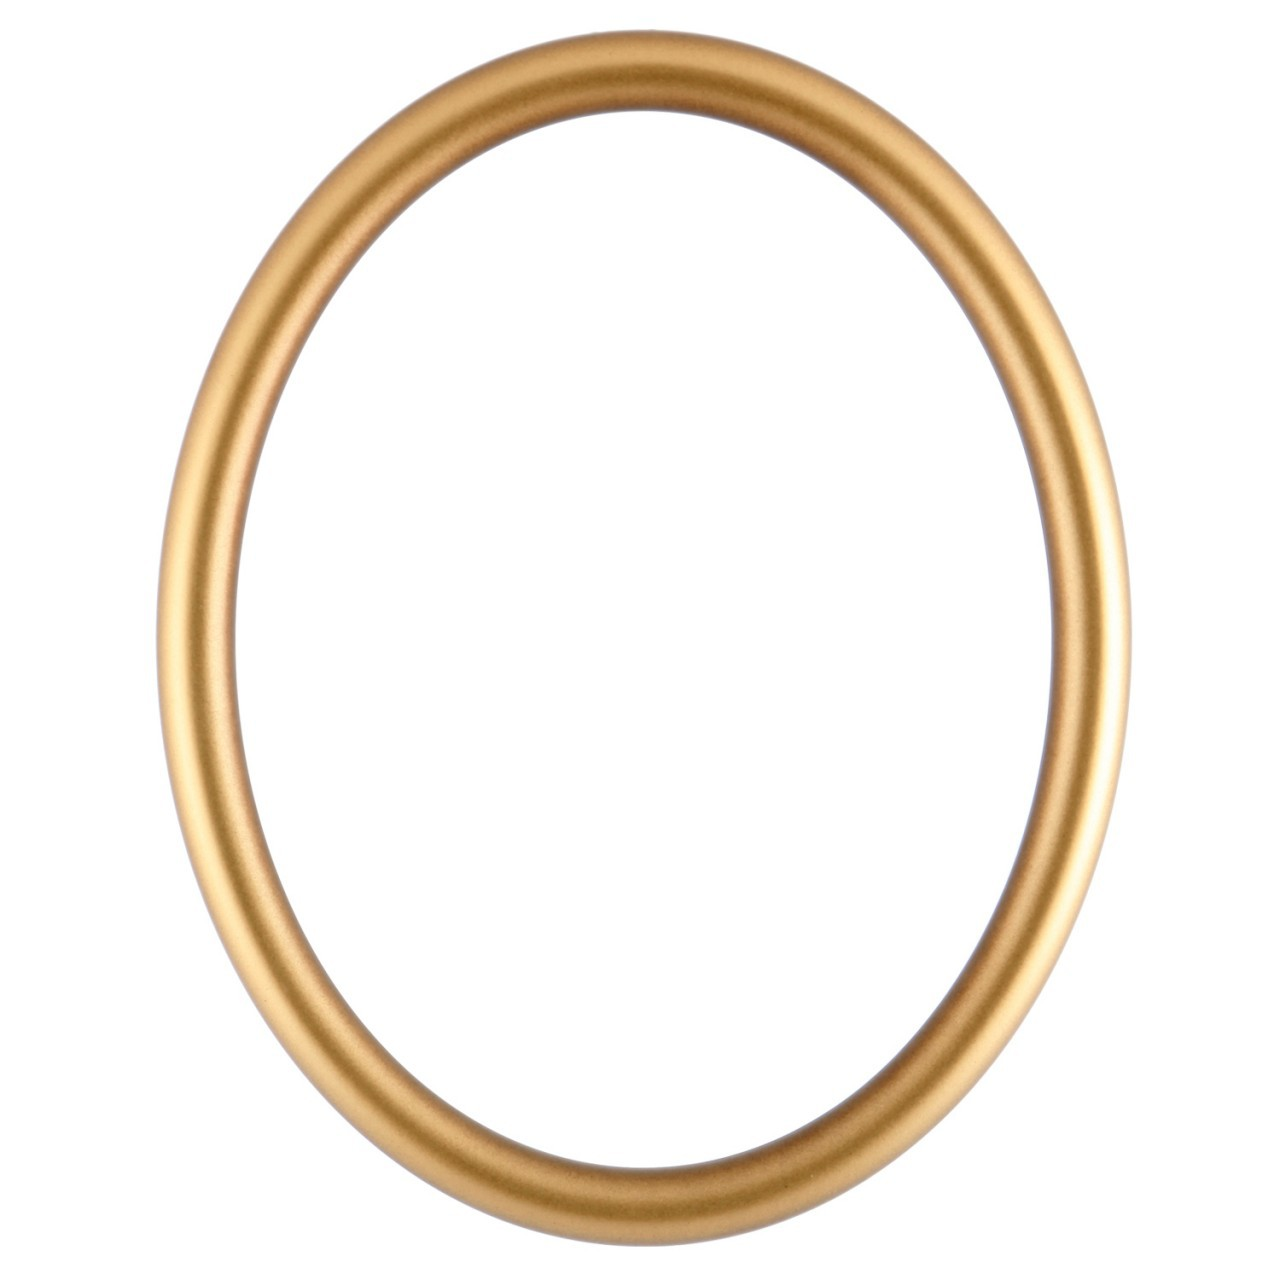 15 PSD Gold Oval Metal Frames Images - Gold Picture Frame ...